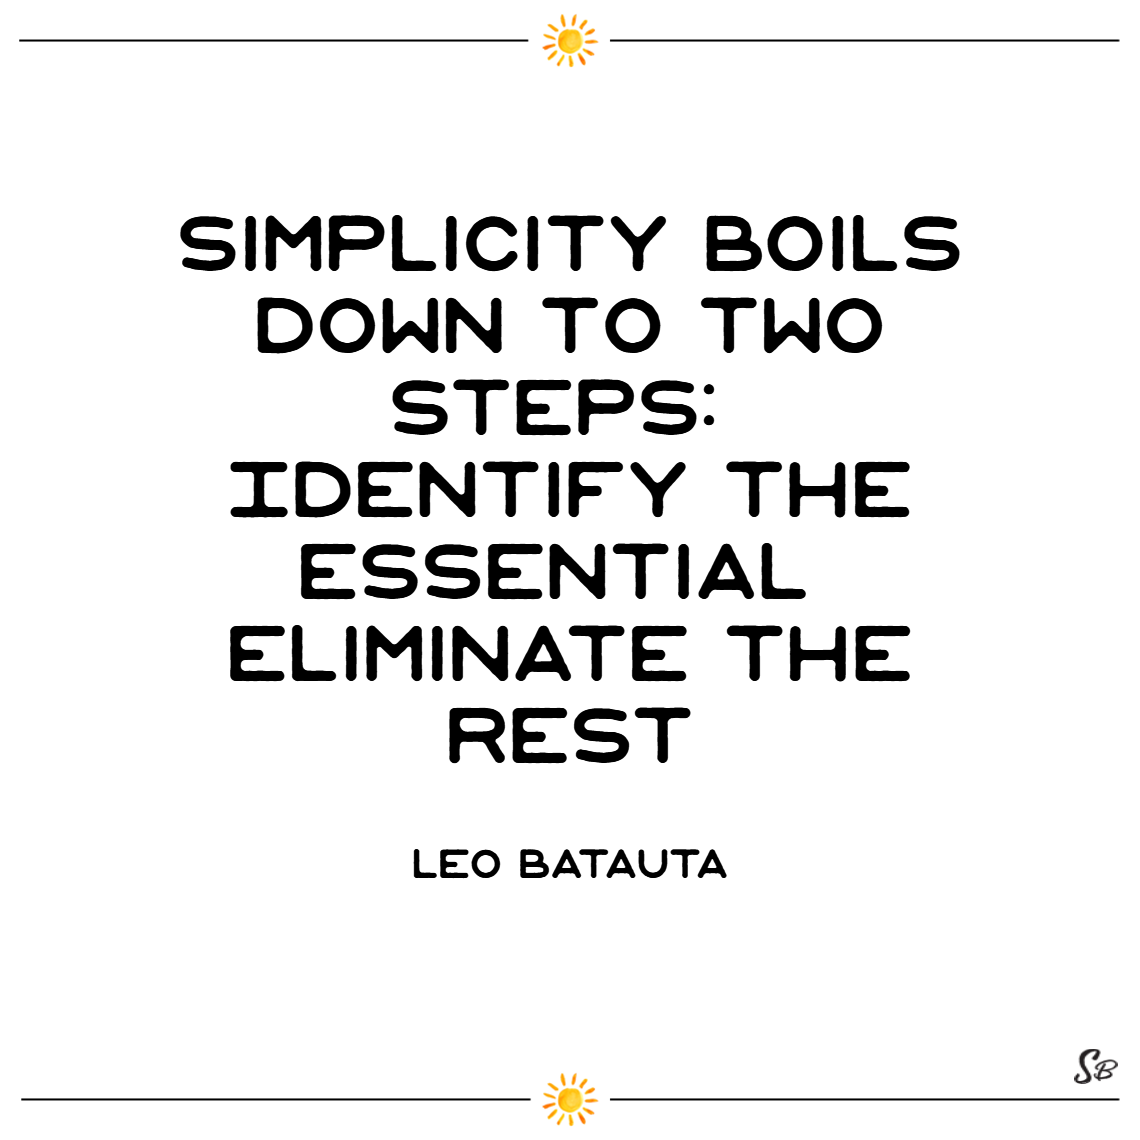 Simplicity boils down to two steps identify the essential. eliminate the rest. – leo babauta